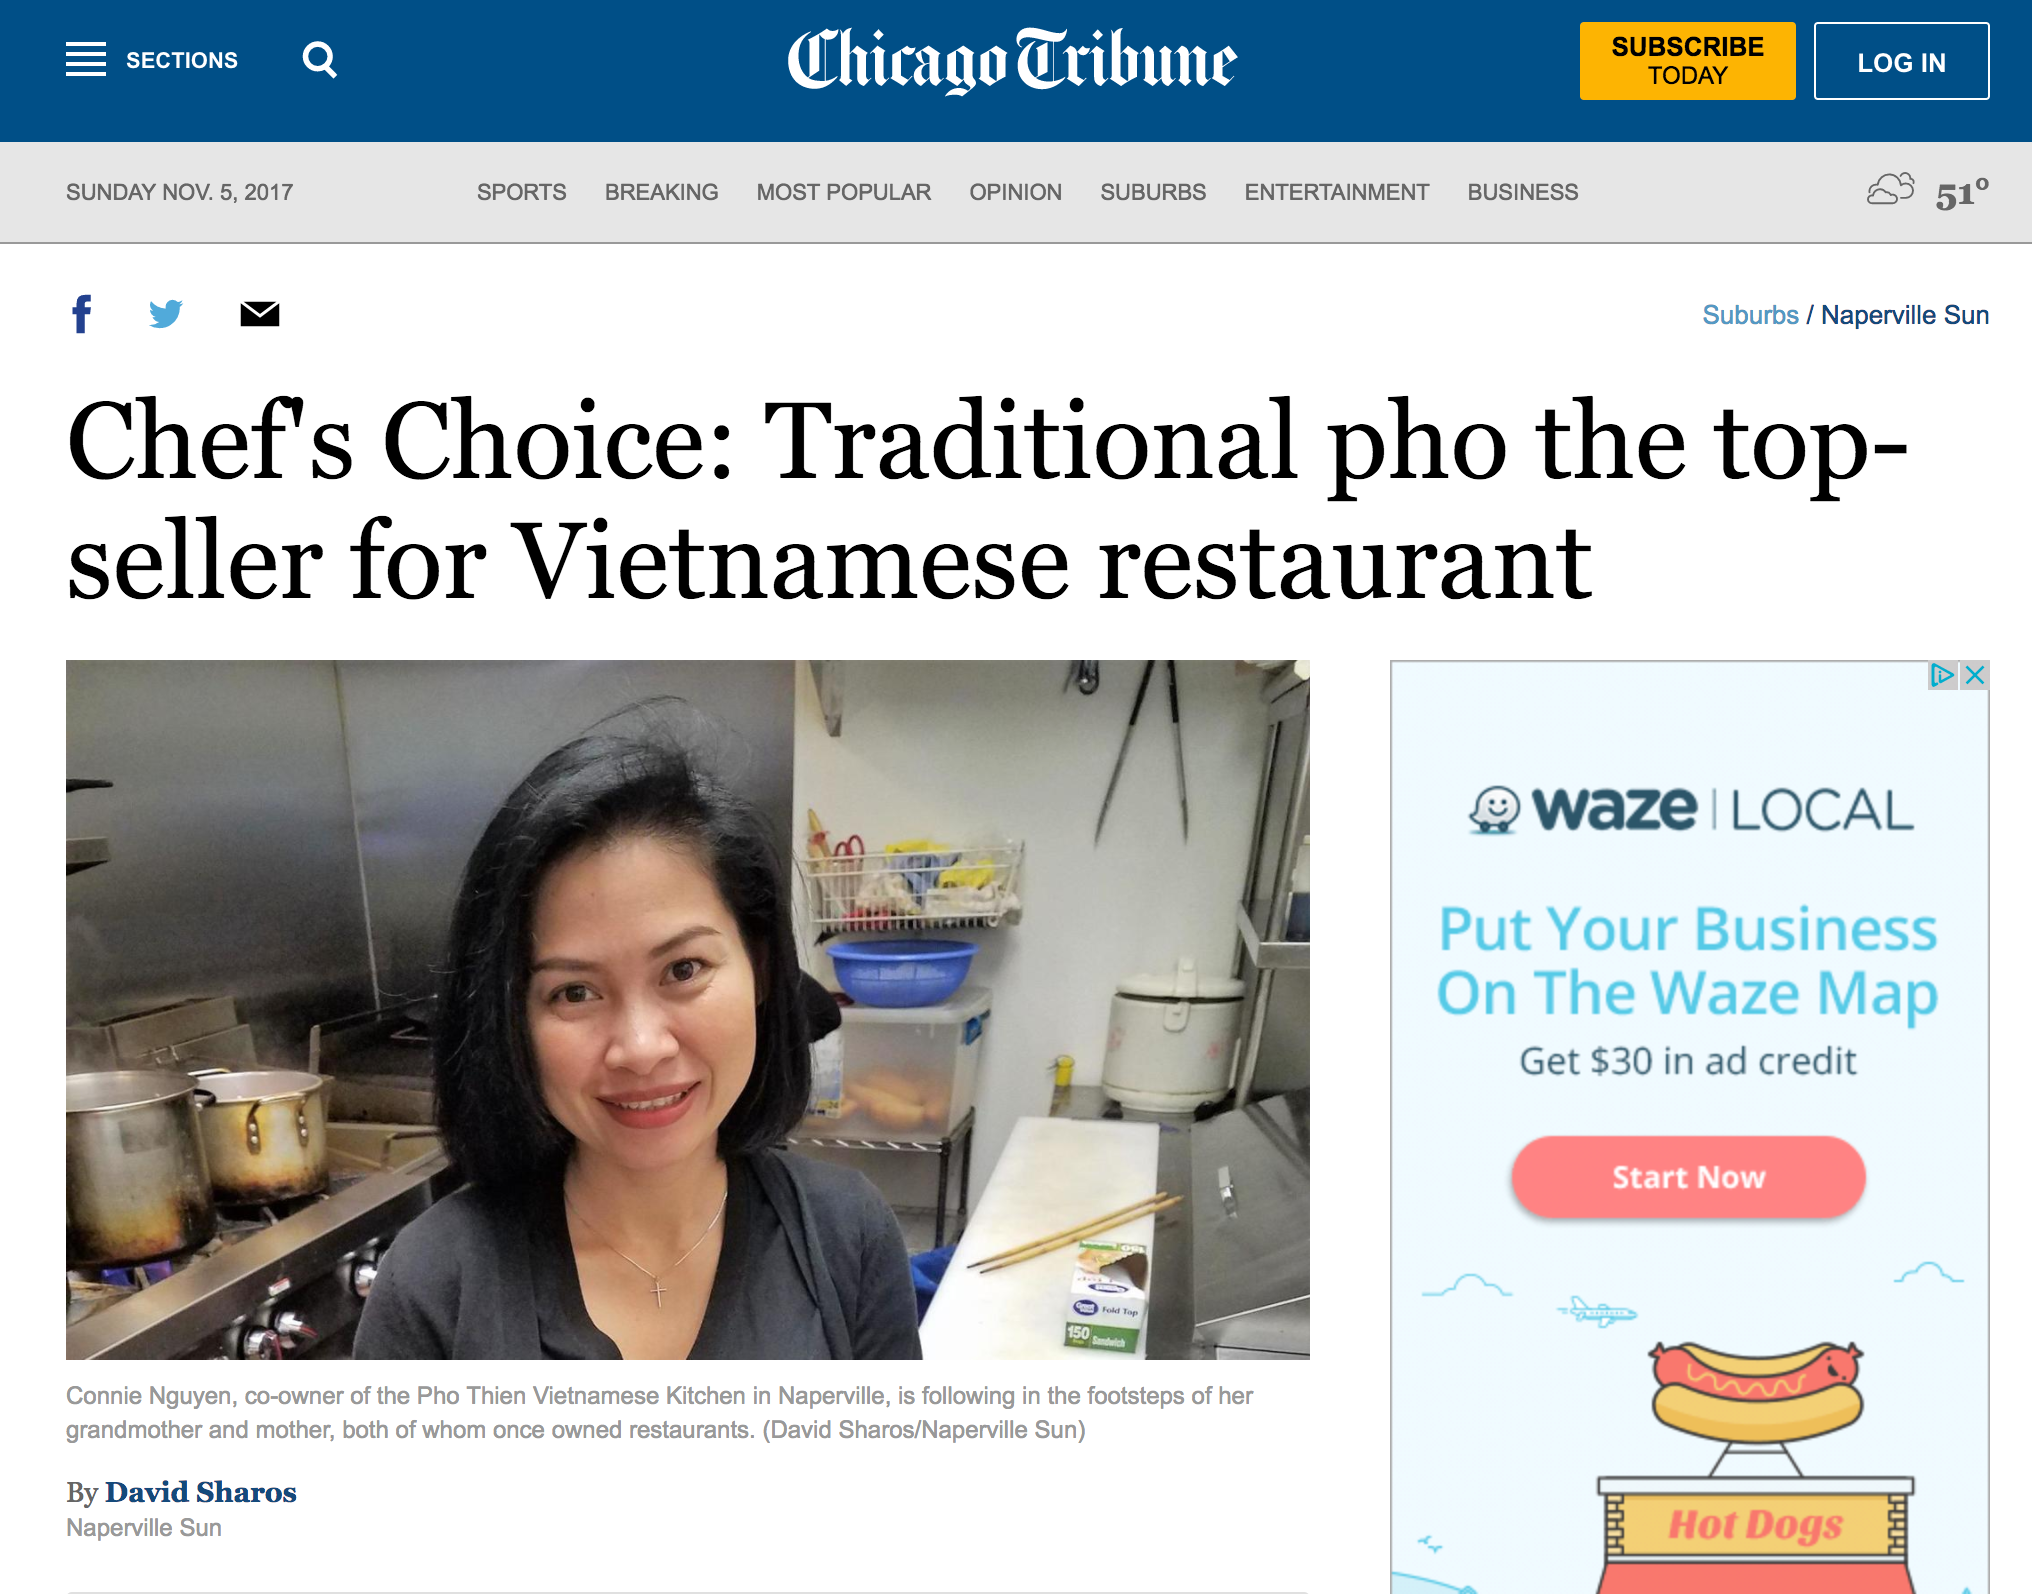 """We are truly blessed to be featured in a second article by the Naperville Sun and Chicago Tribune. In the """"Chef's Choice"""" article, the  Naperville  Sun asks local chefs to share their culinary background and experiences and to talk about a featured dish found on their menu.   http://www.chicagotribune.com/suburbs/naperville-sun/ct-nvs-chefs-choice-st-1103-20171102-story.html"""